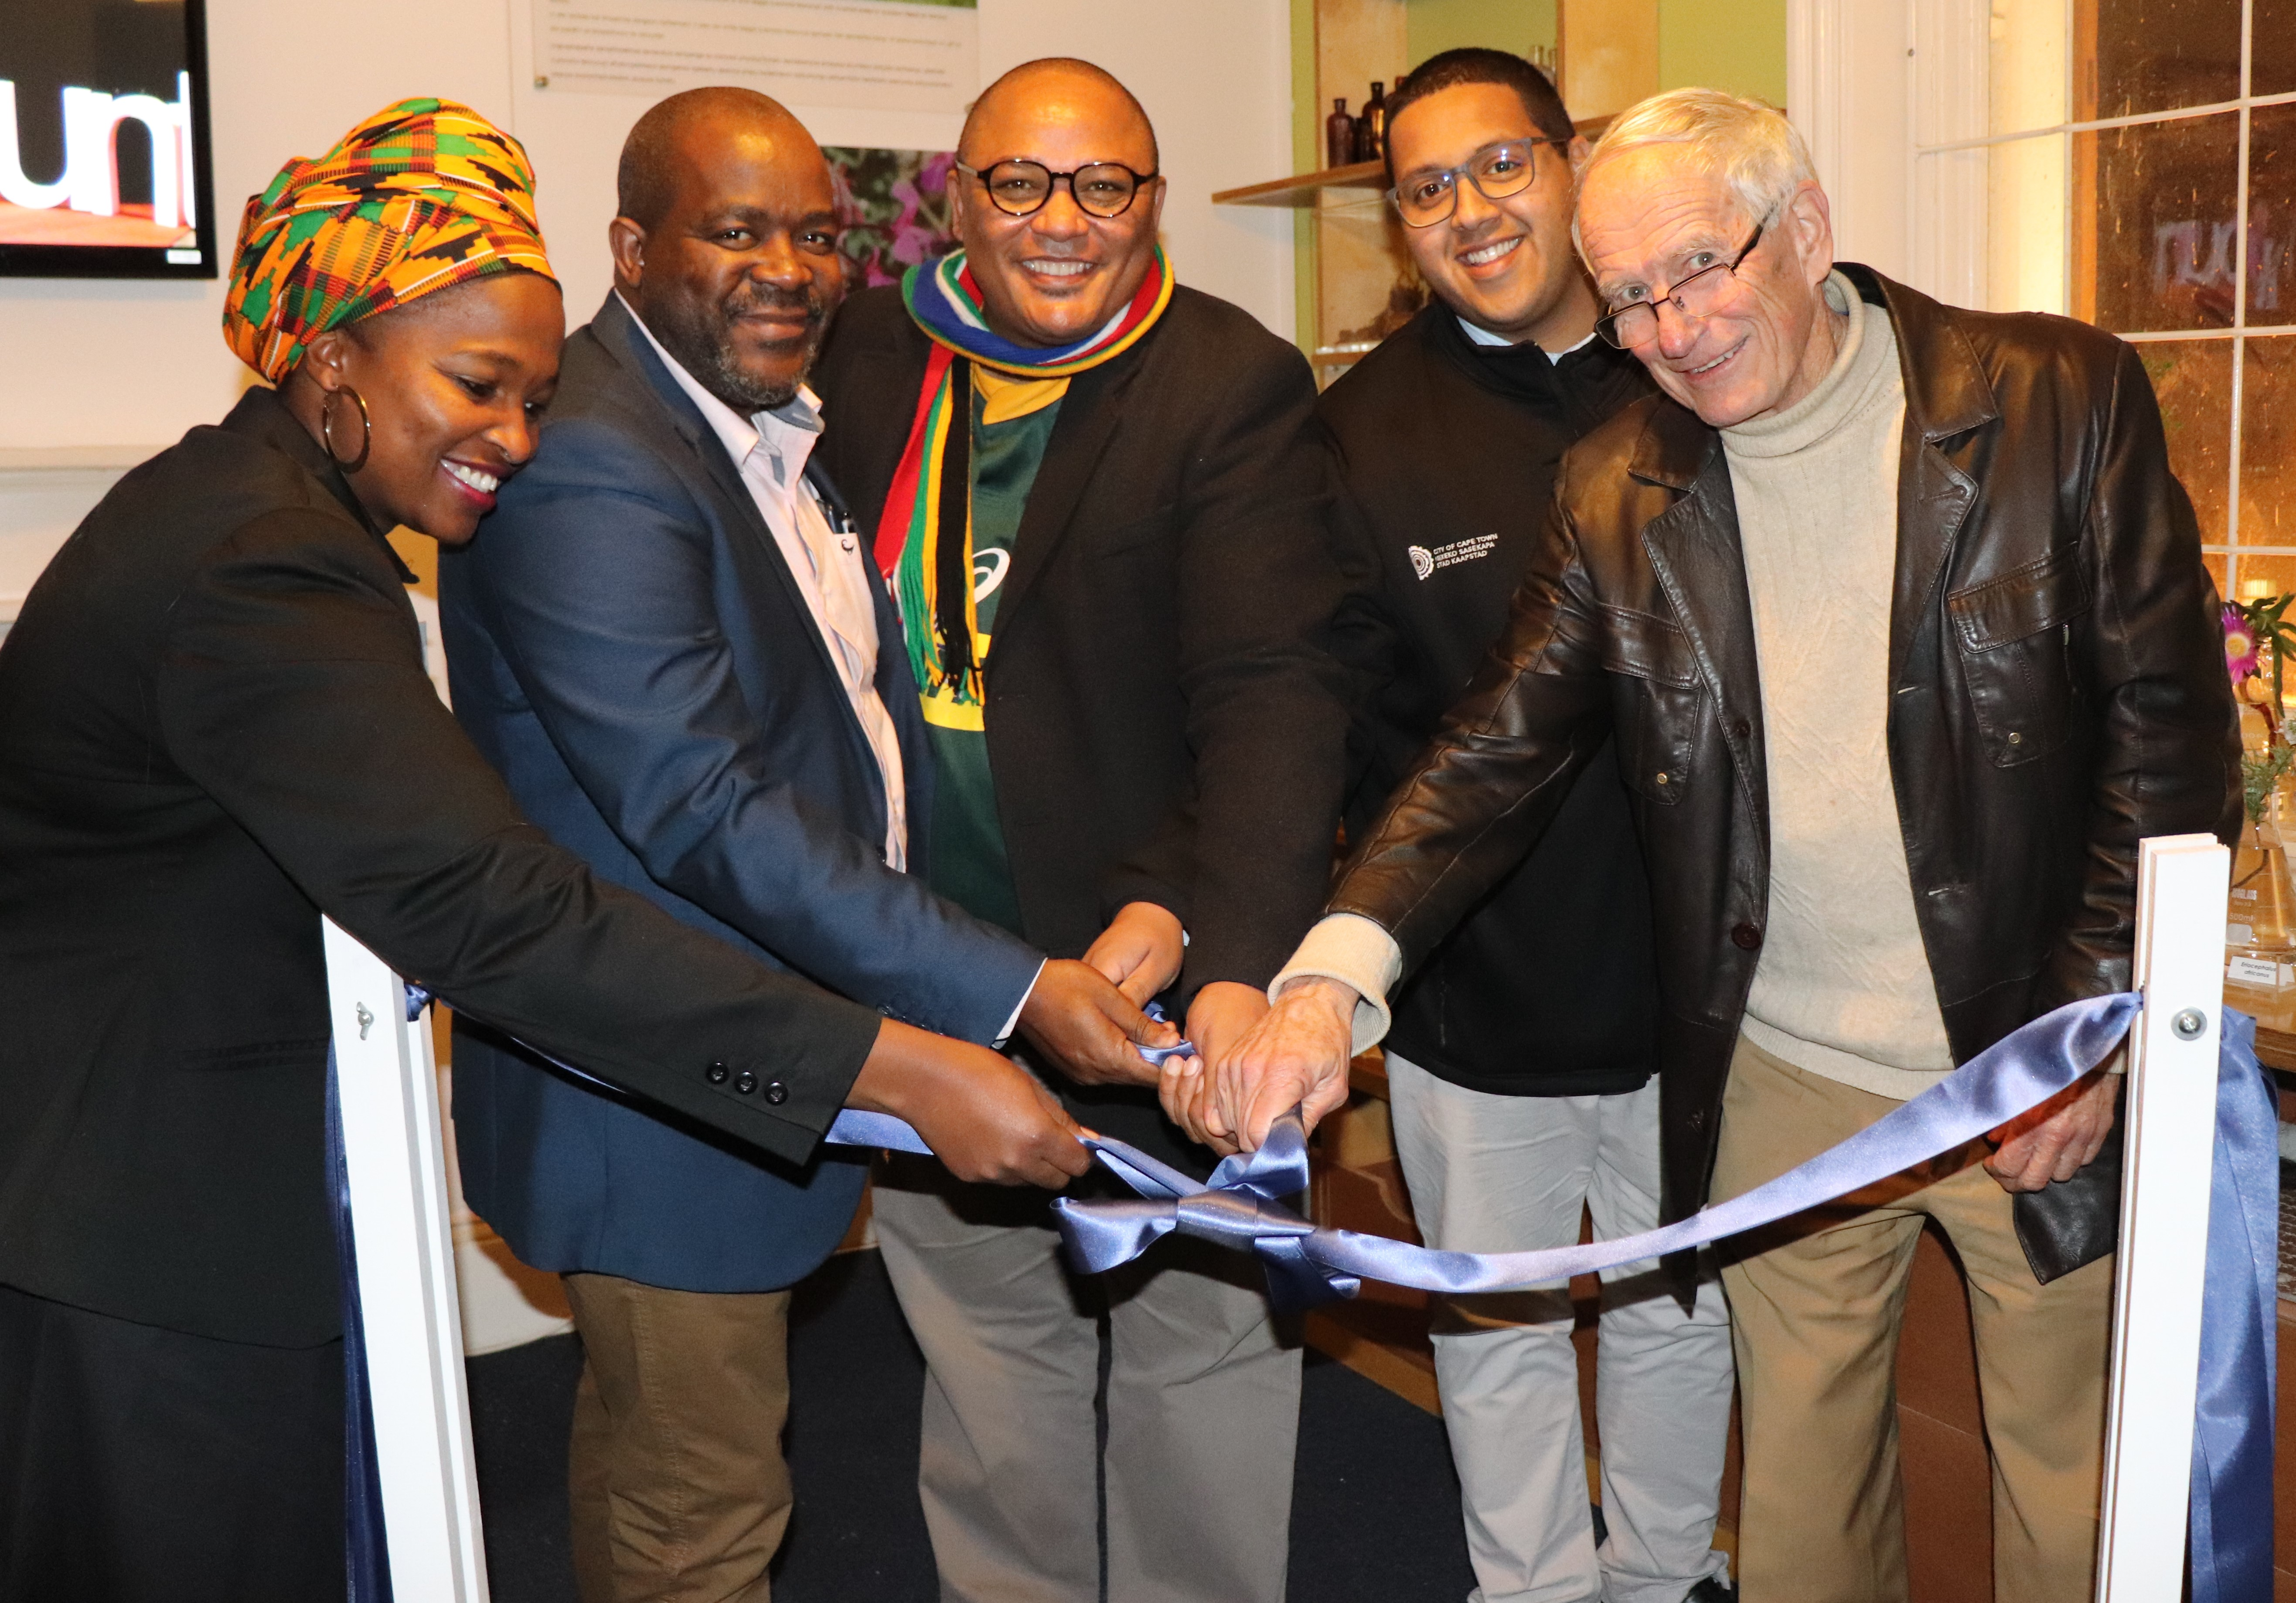 Kholiwe Dubula, Dr Mxolisi Dlamuka, Chief Director Guy Redman, Dr Zahid Badroodien and Prof Peter Gordon officially launch the exhibition at the Cape Medical Museum